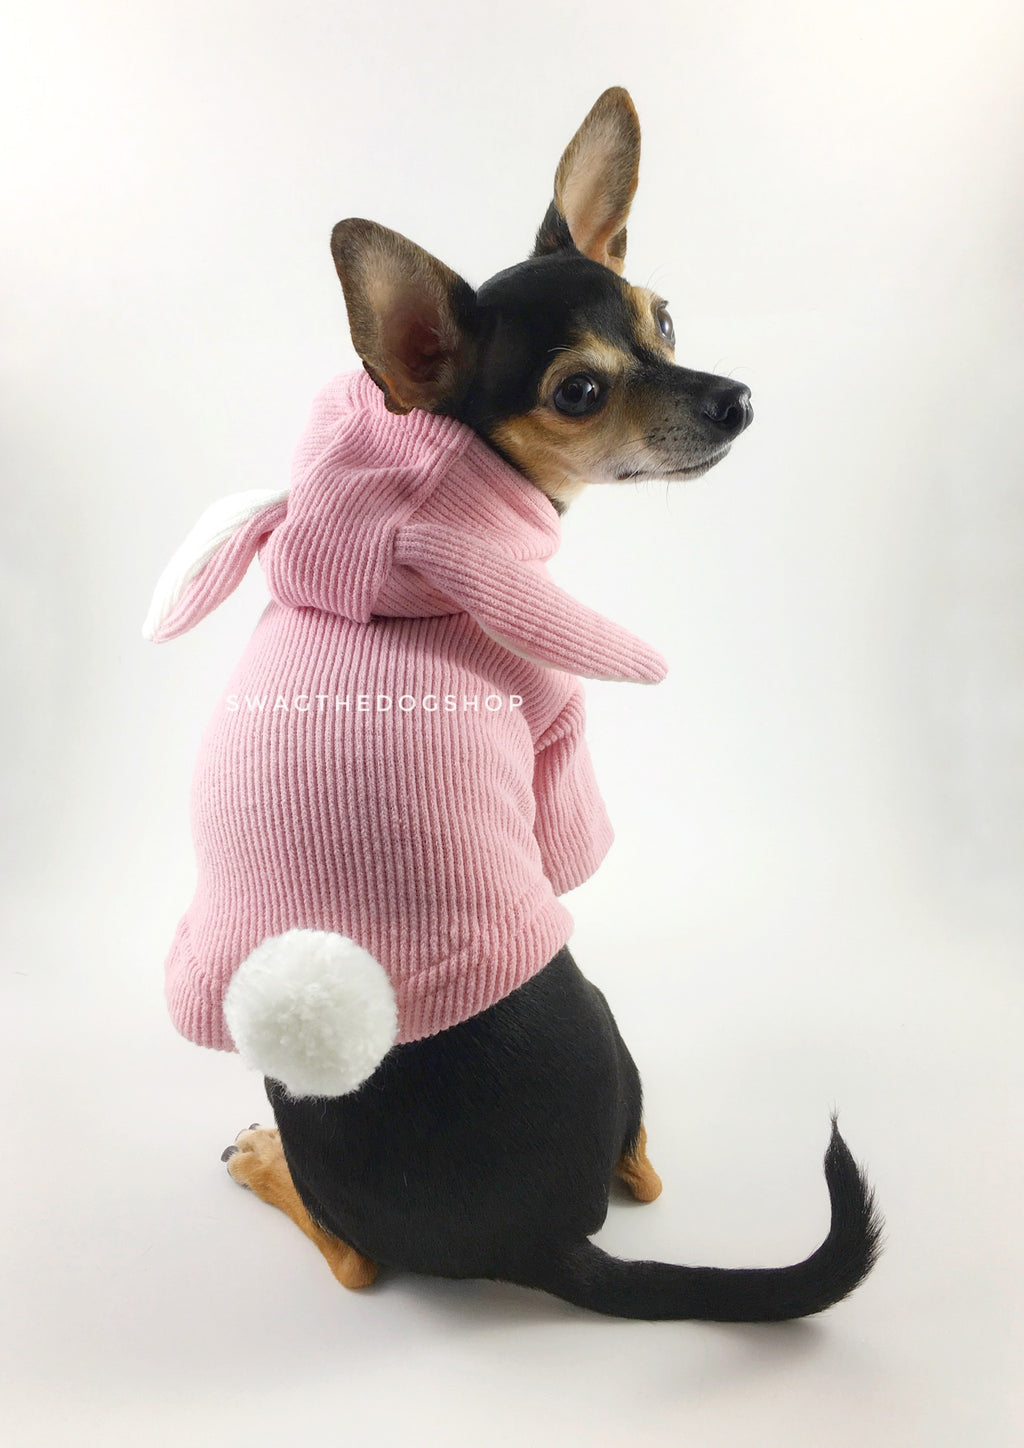 Pink Bunny Hoodie - Cute Chihuahua Dog Wearing Hoodie Looking Back. Pink Bunny Hoodie with Pom Pom Tail